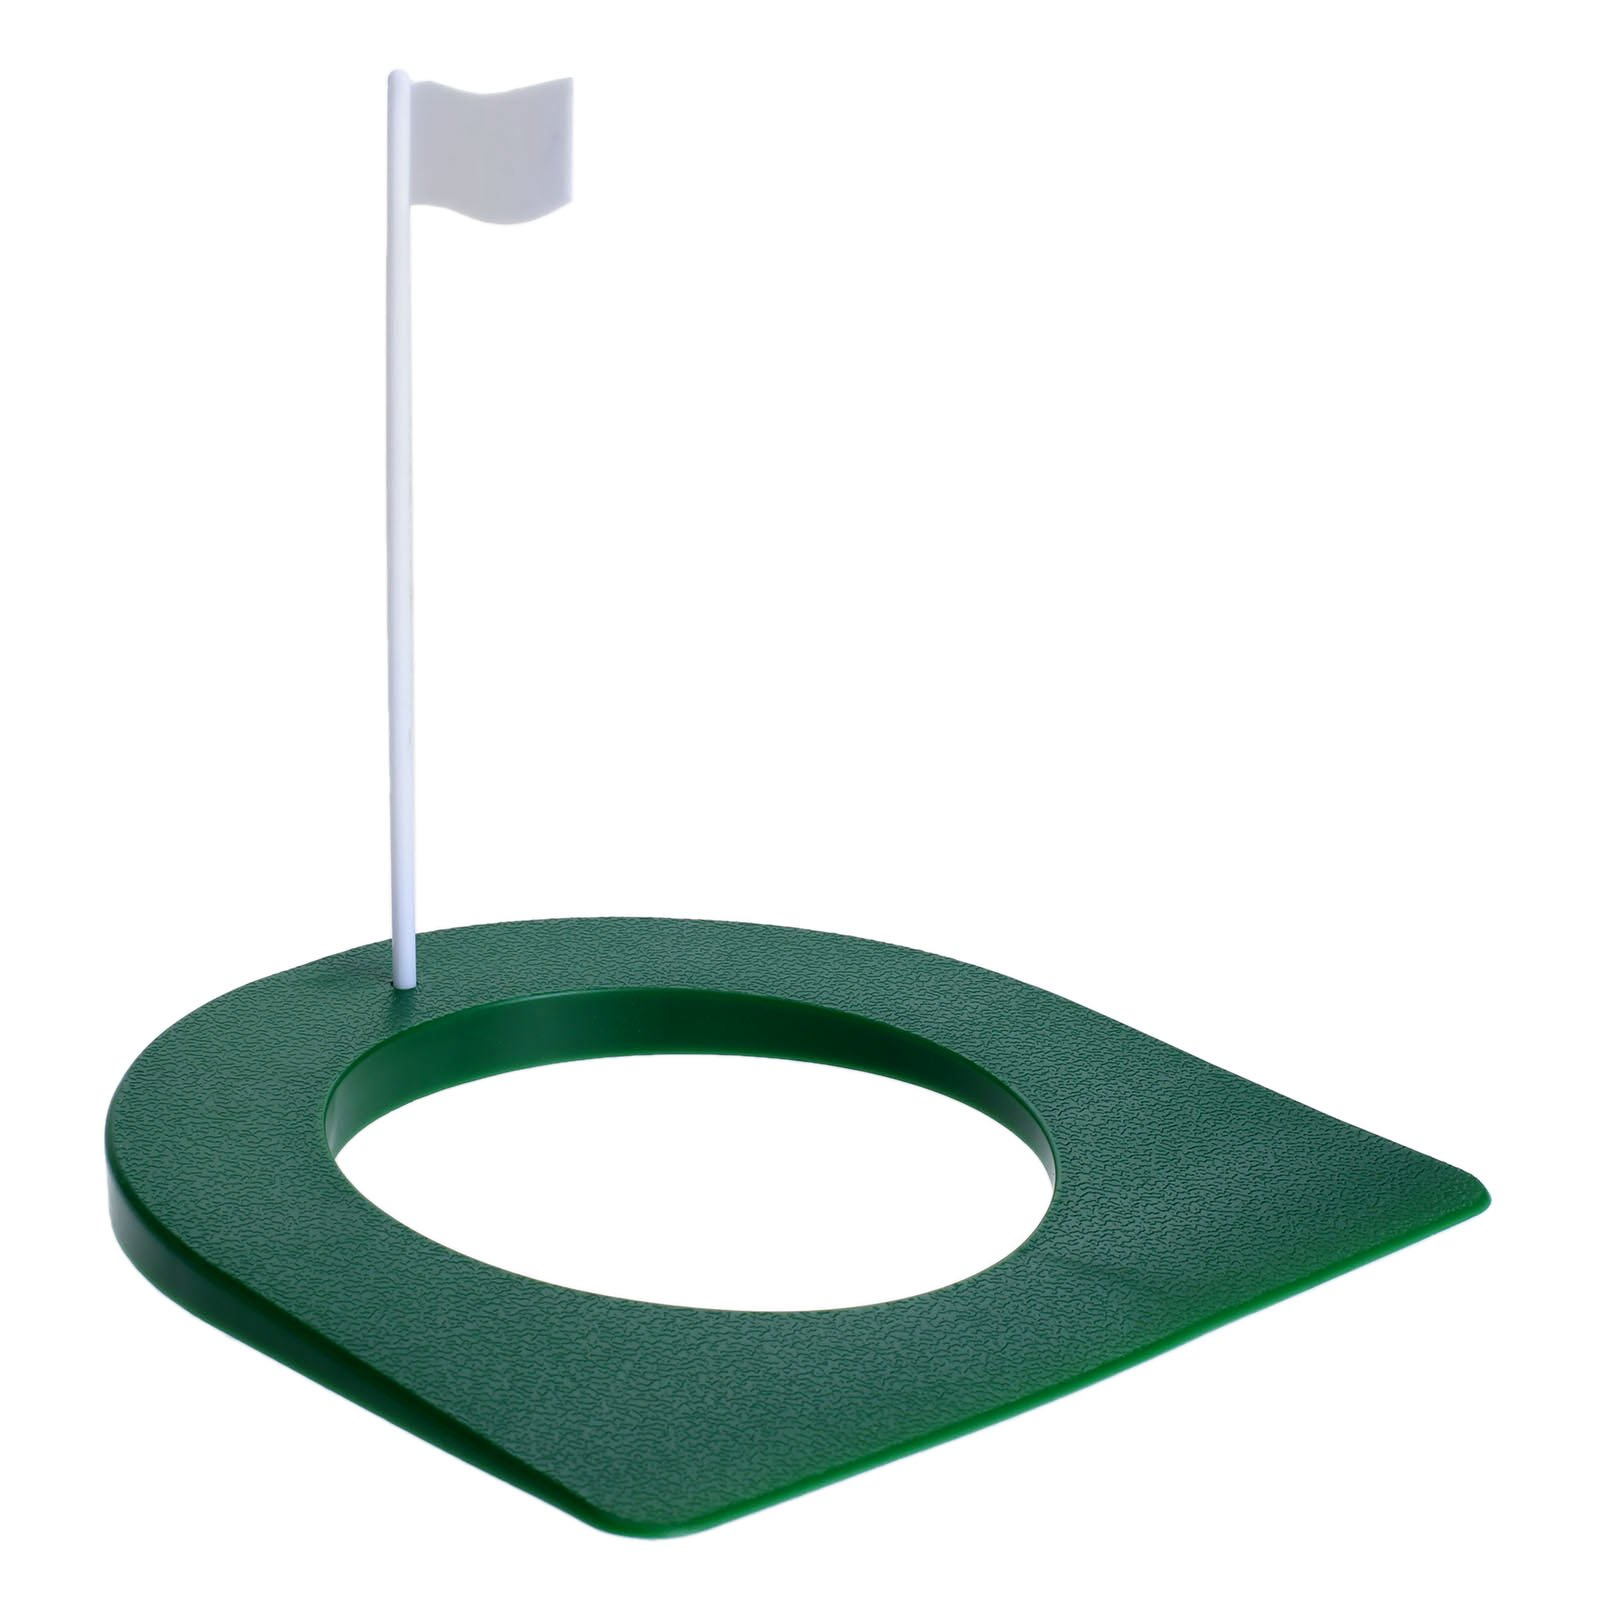 MUXSAM 2 Pcs Golf Putting Green Regulation Cup Hole Flag Indoor Practice Training Aids by MUXSAM